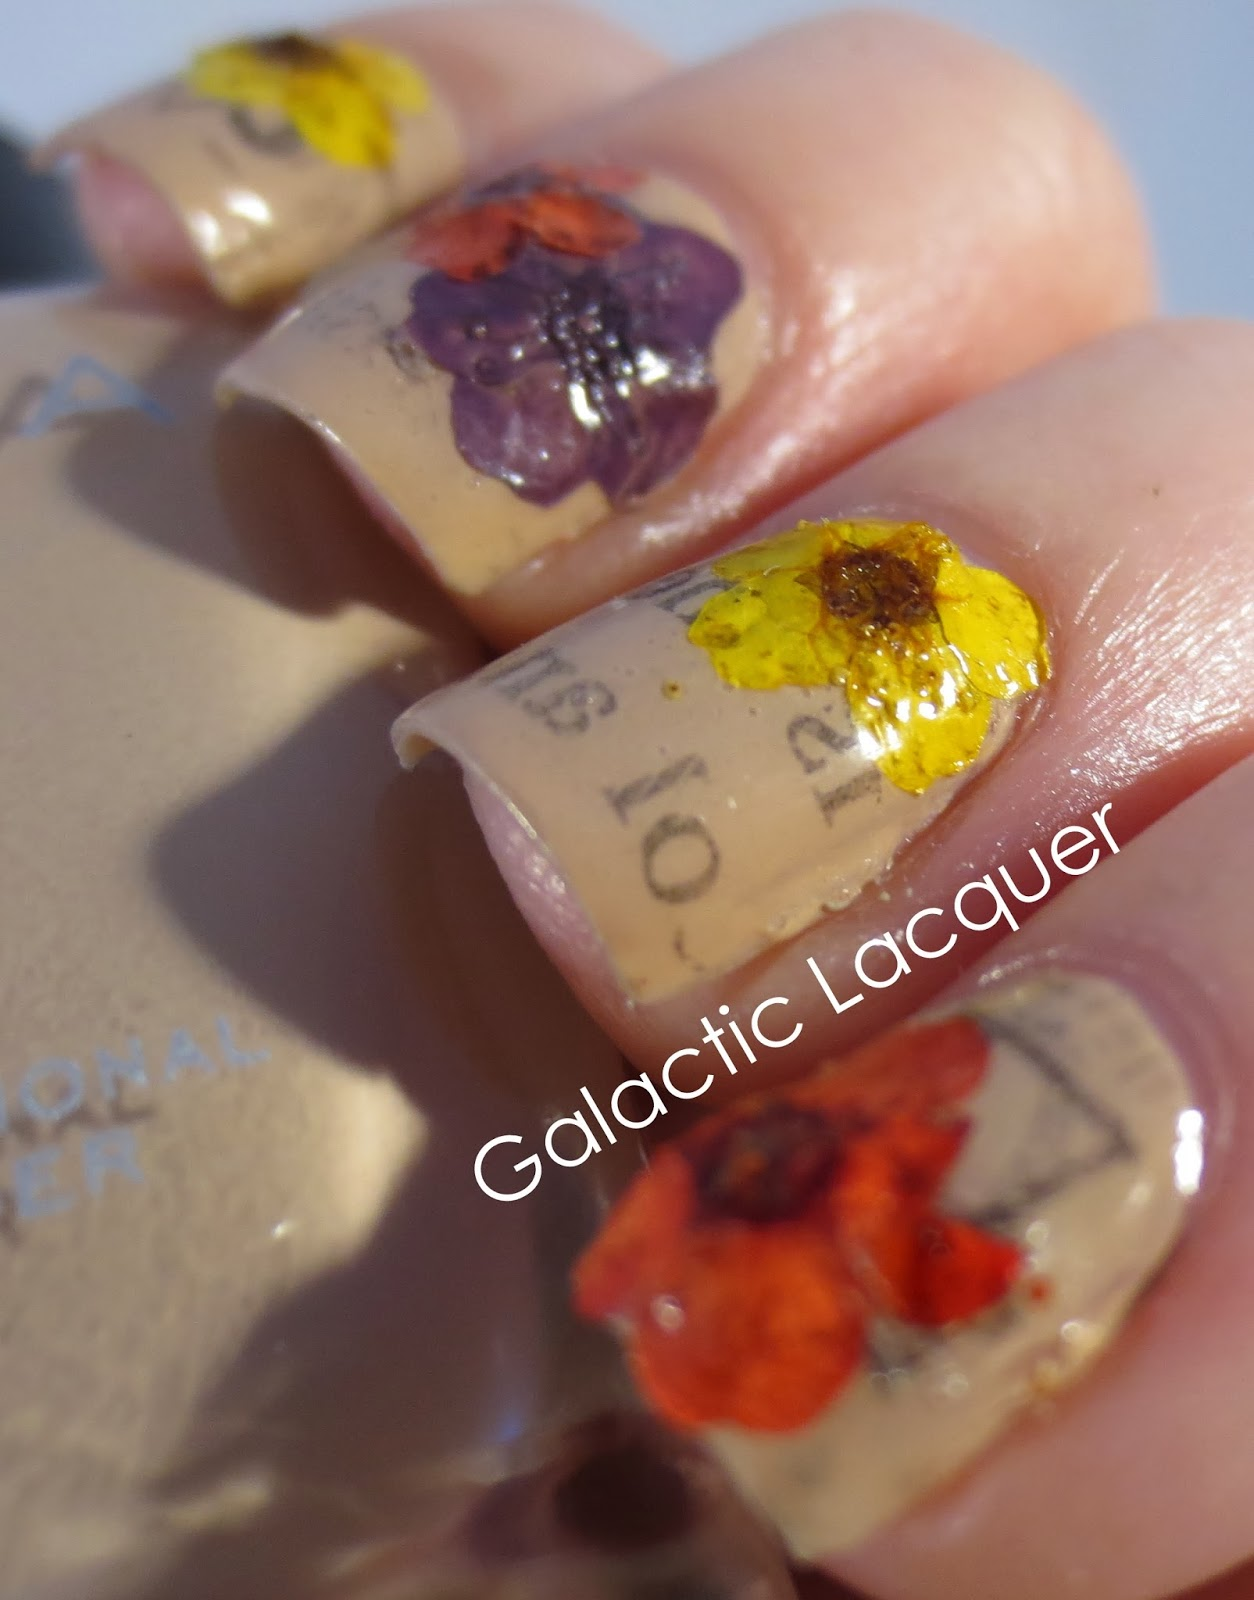 Galactic Lacquer: Nail Art with Newsprint and Dried Flowers